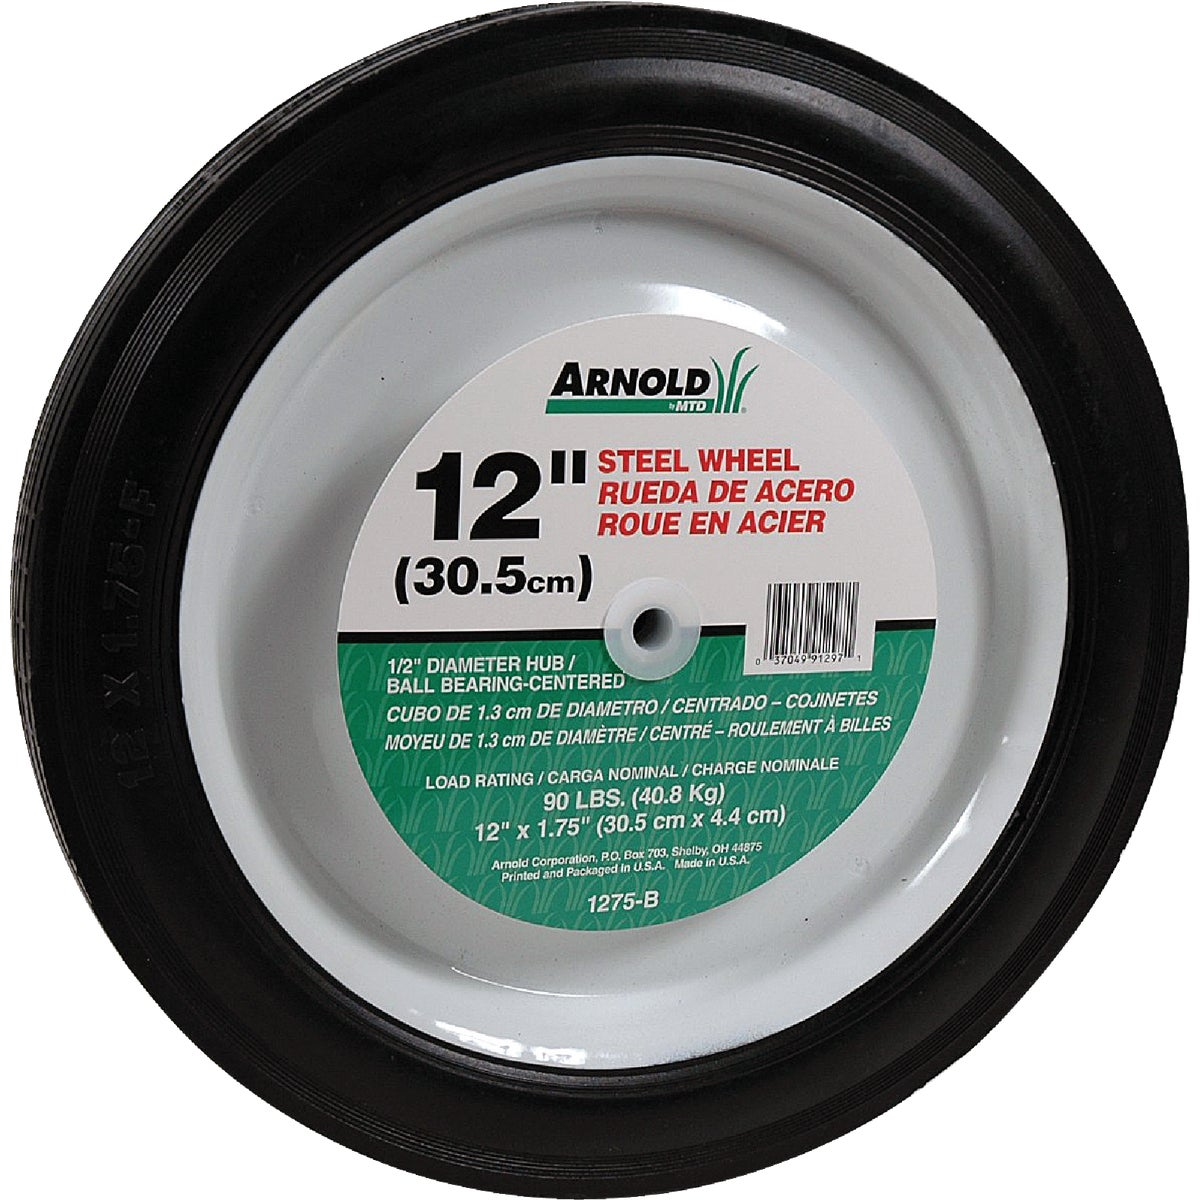 12X1.75 STEEL WHEEL - 1275-B by Arnold Corp